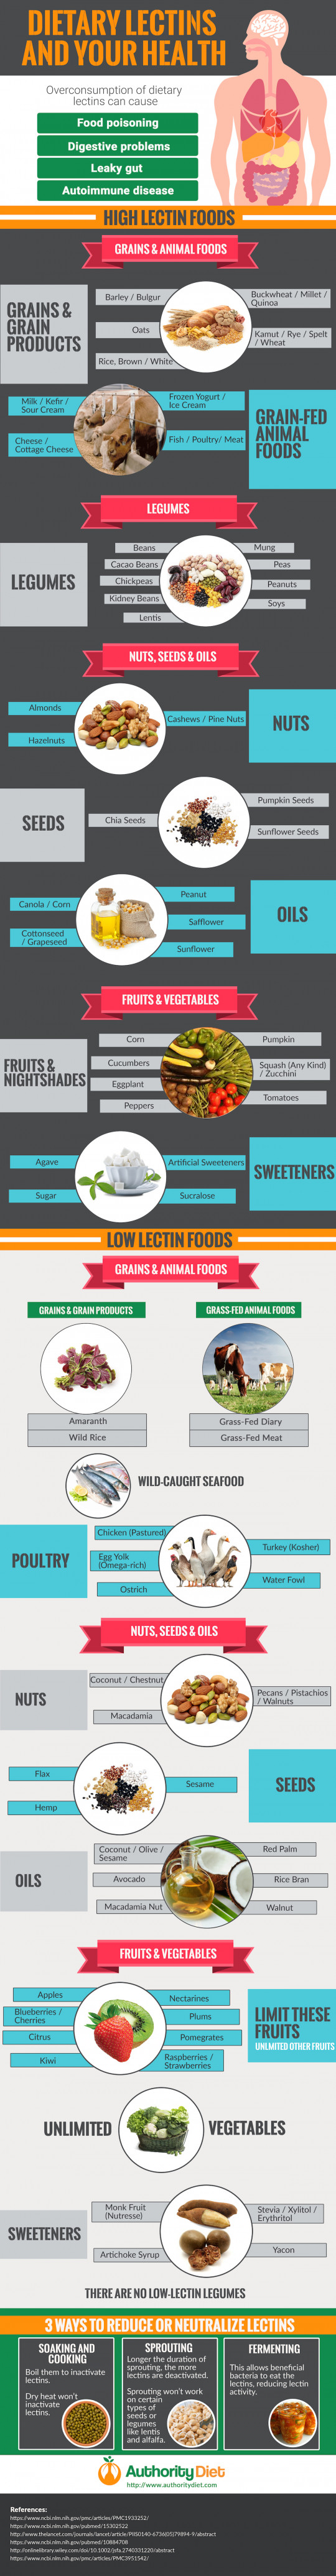 Dietary Lectins and Your Health